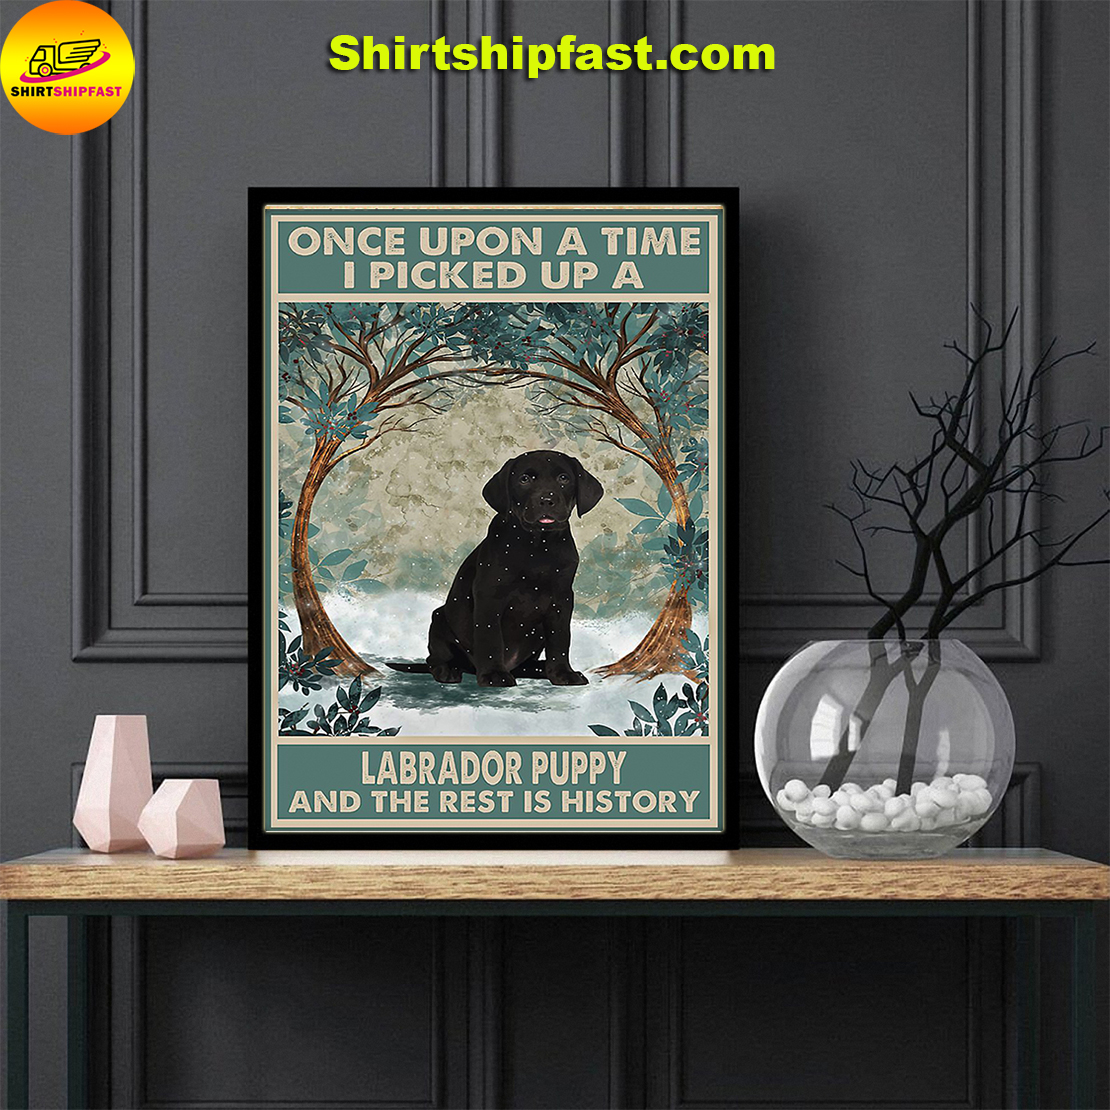 Once upon a time I pick up a Labrador puppy and the rest is history poster - Picture 2